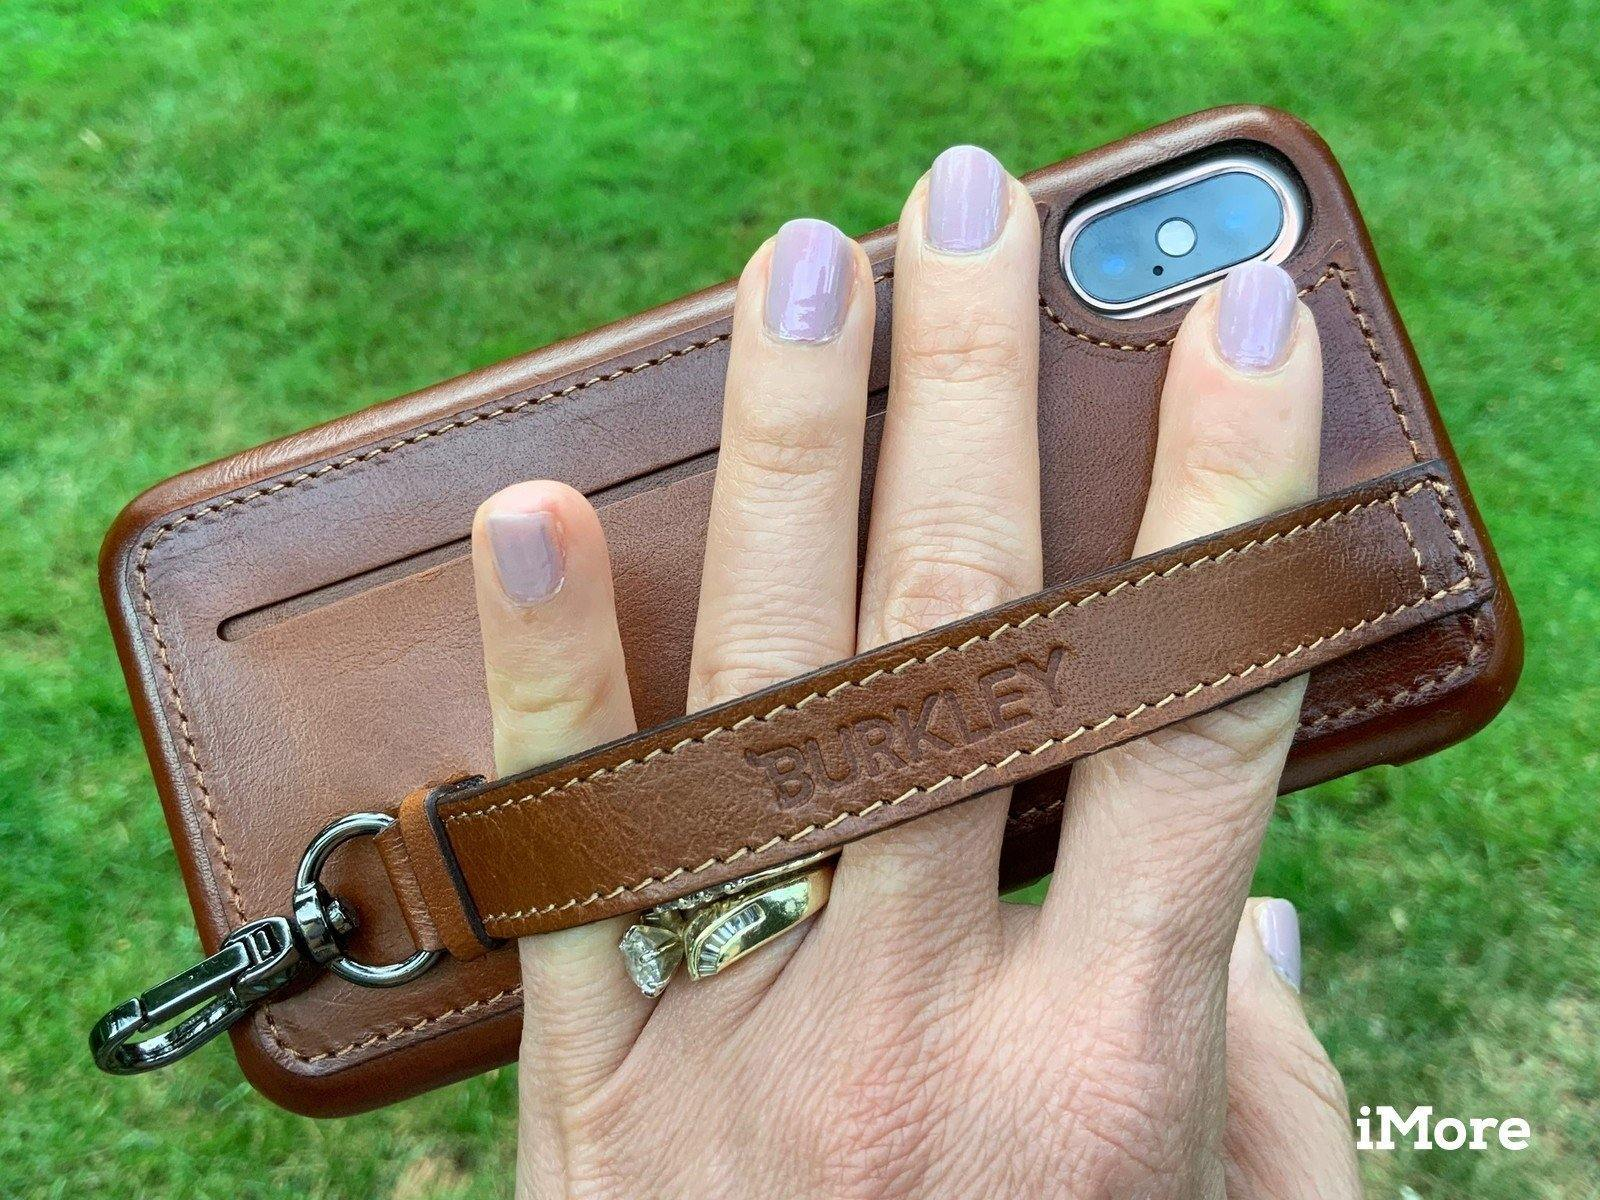 iMore's Hands-On Review: Burkley Belton iPhone Case | Burkley Case